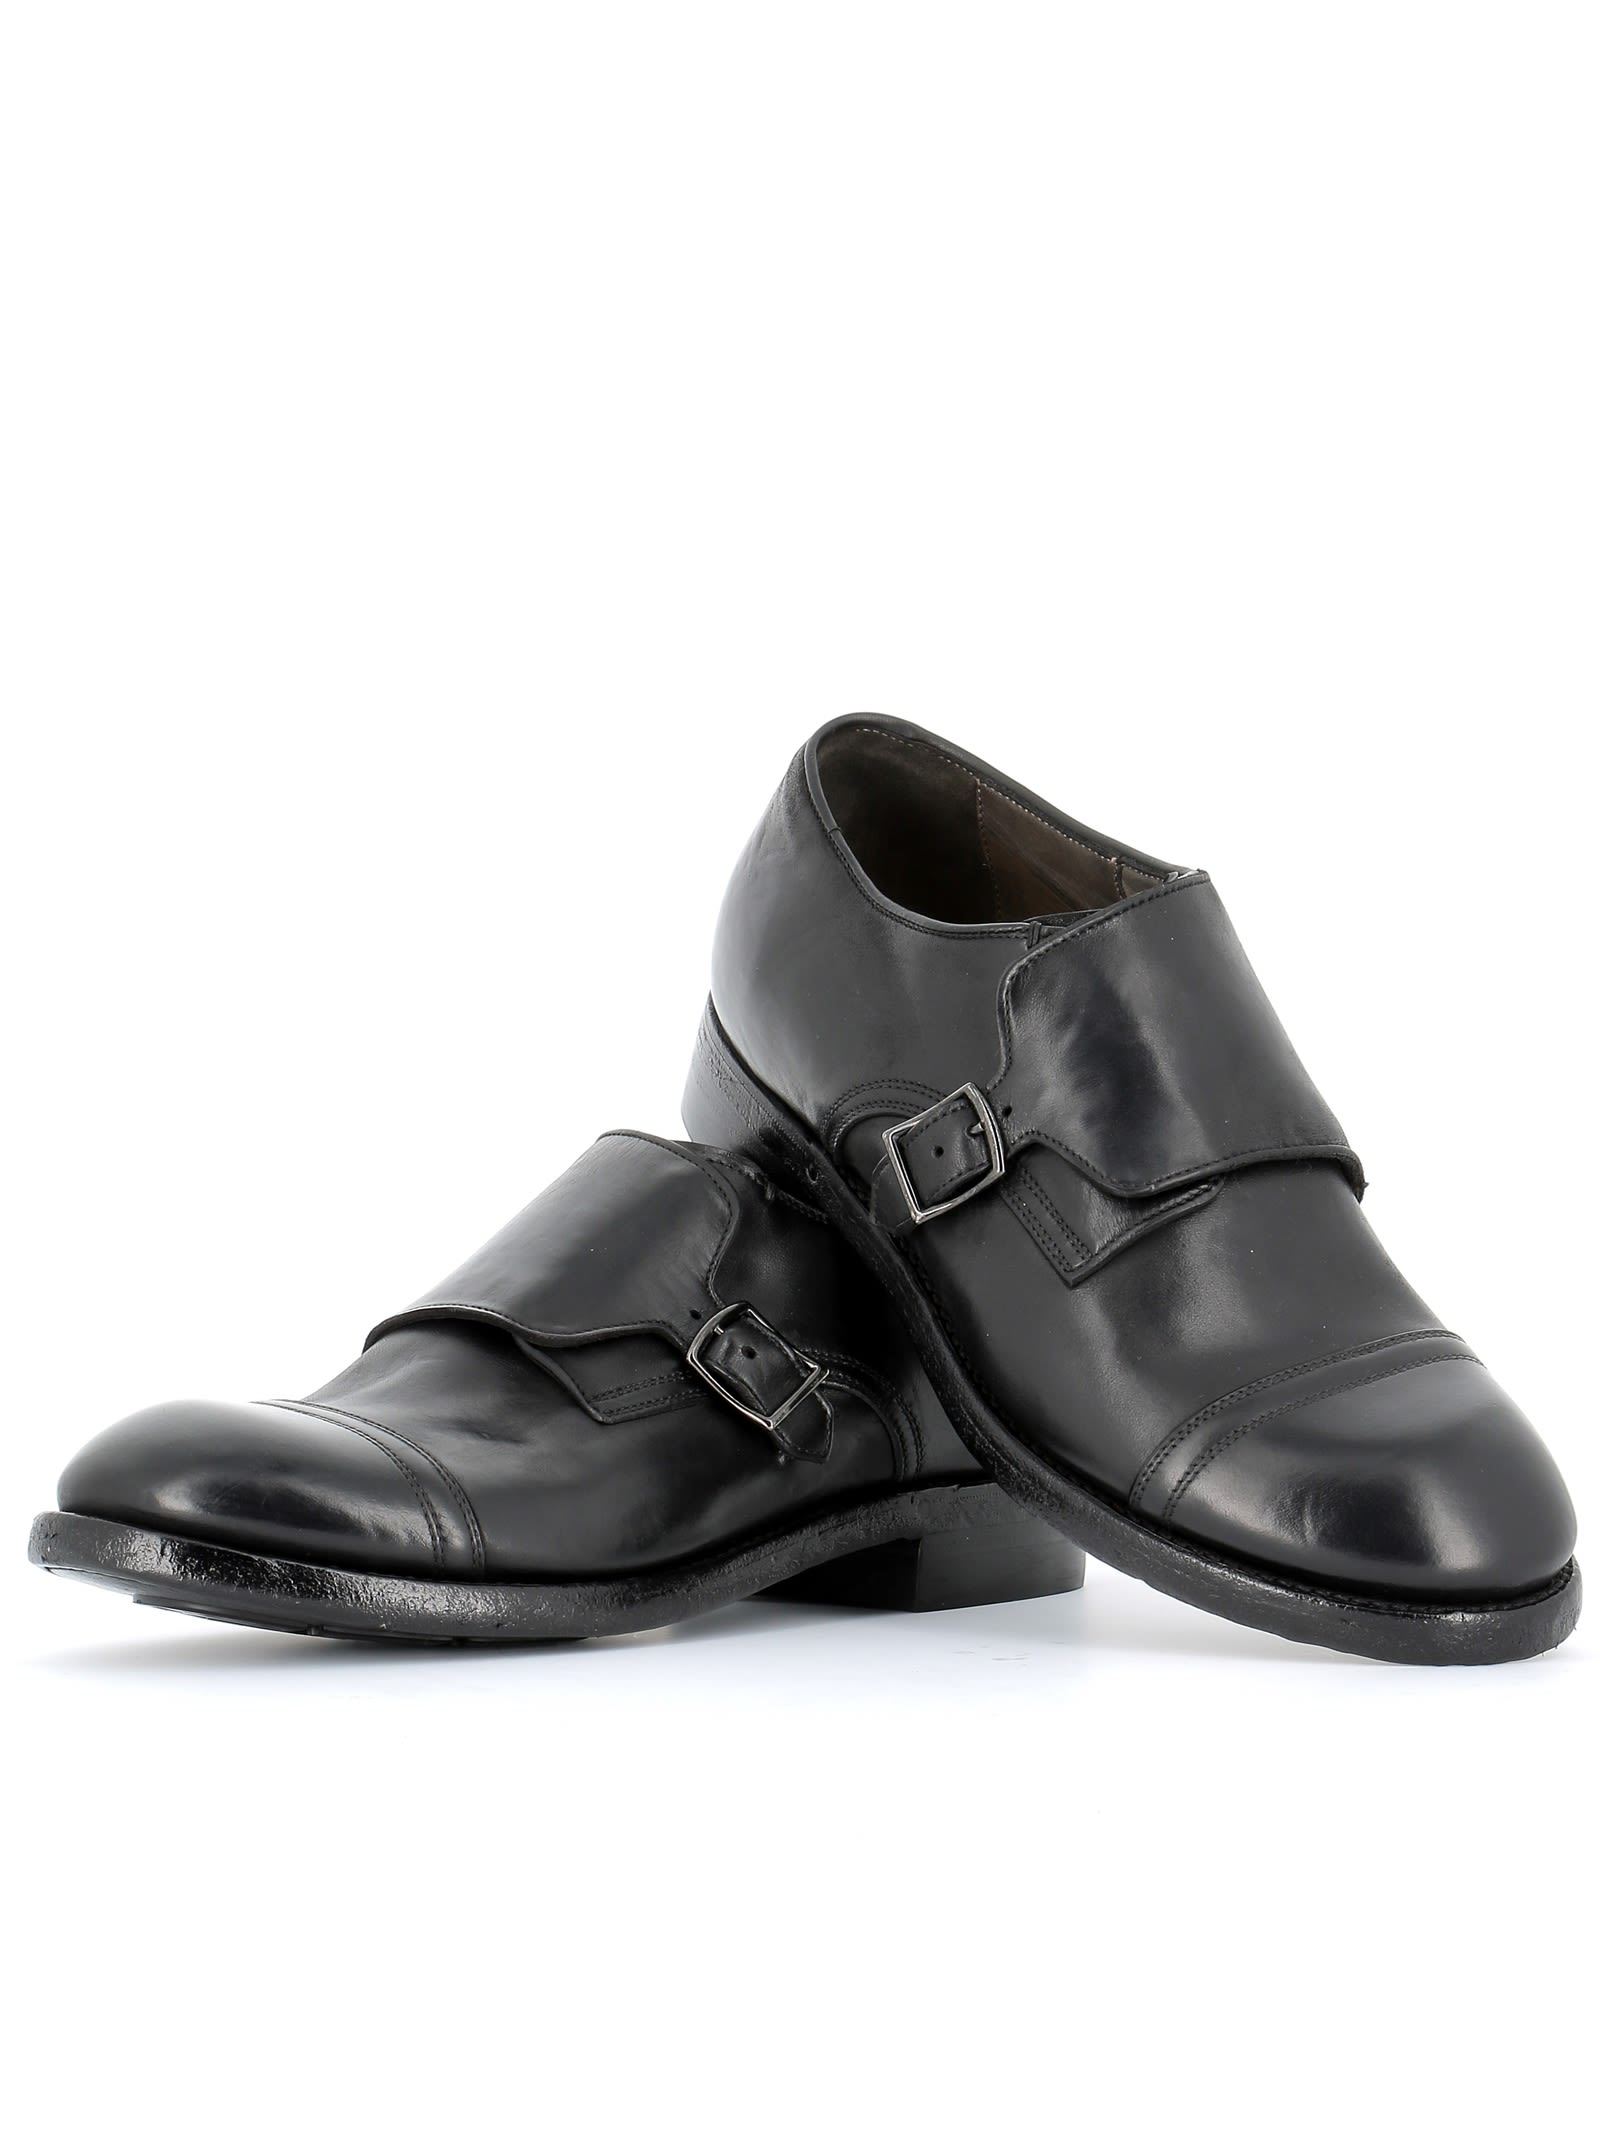 Silvano Sassetti Buckle Shoes